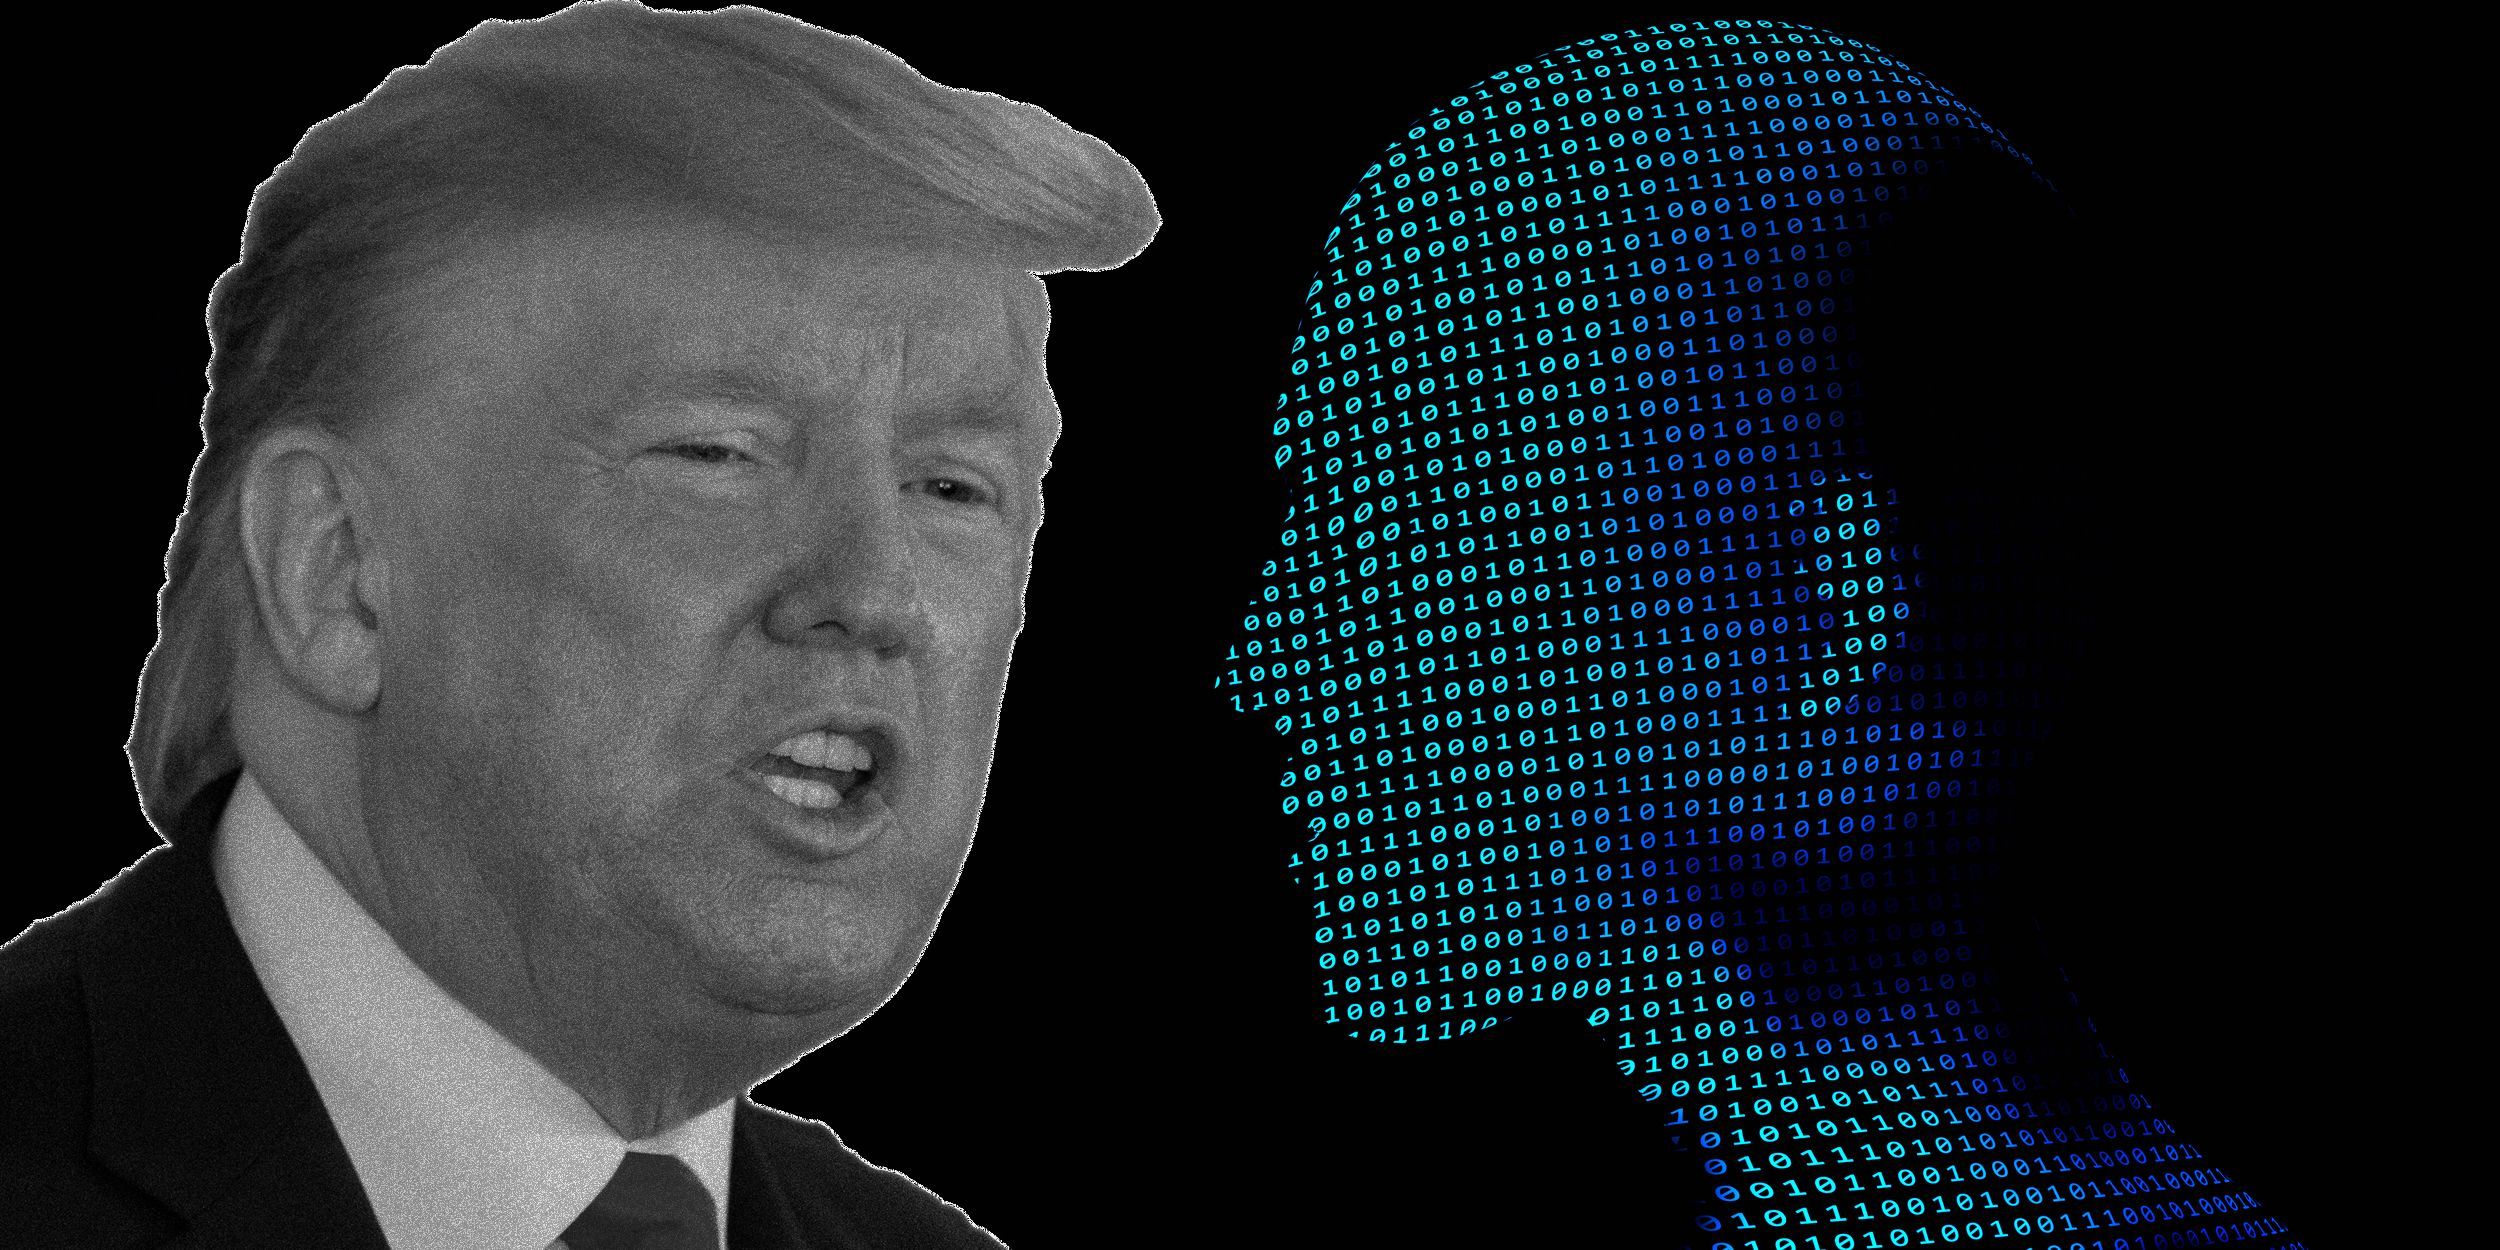 The Trump Administration Wants to Regulate Artificial Intelligence